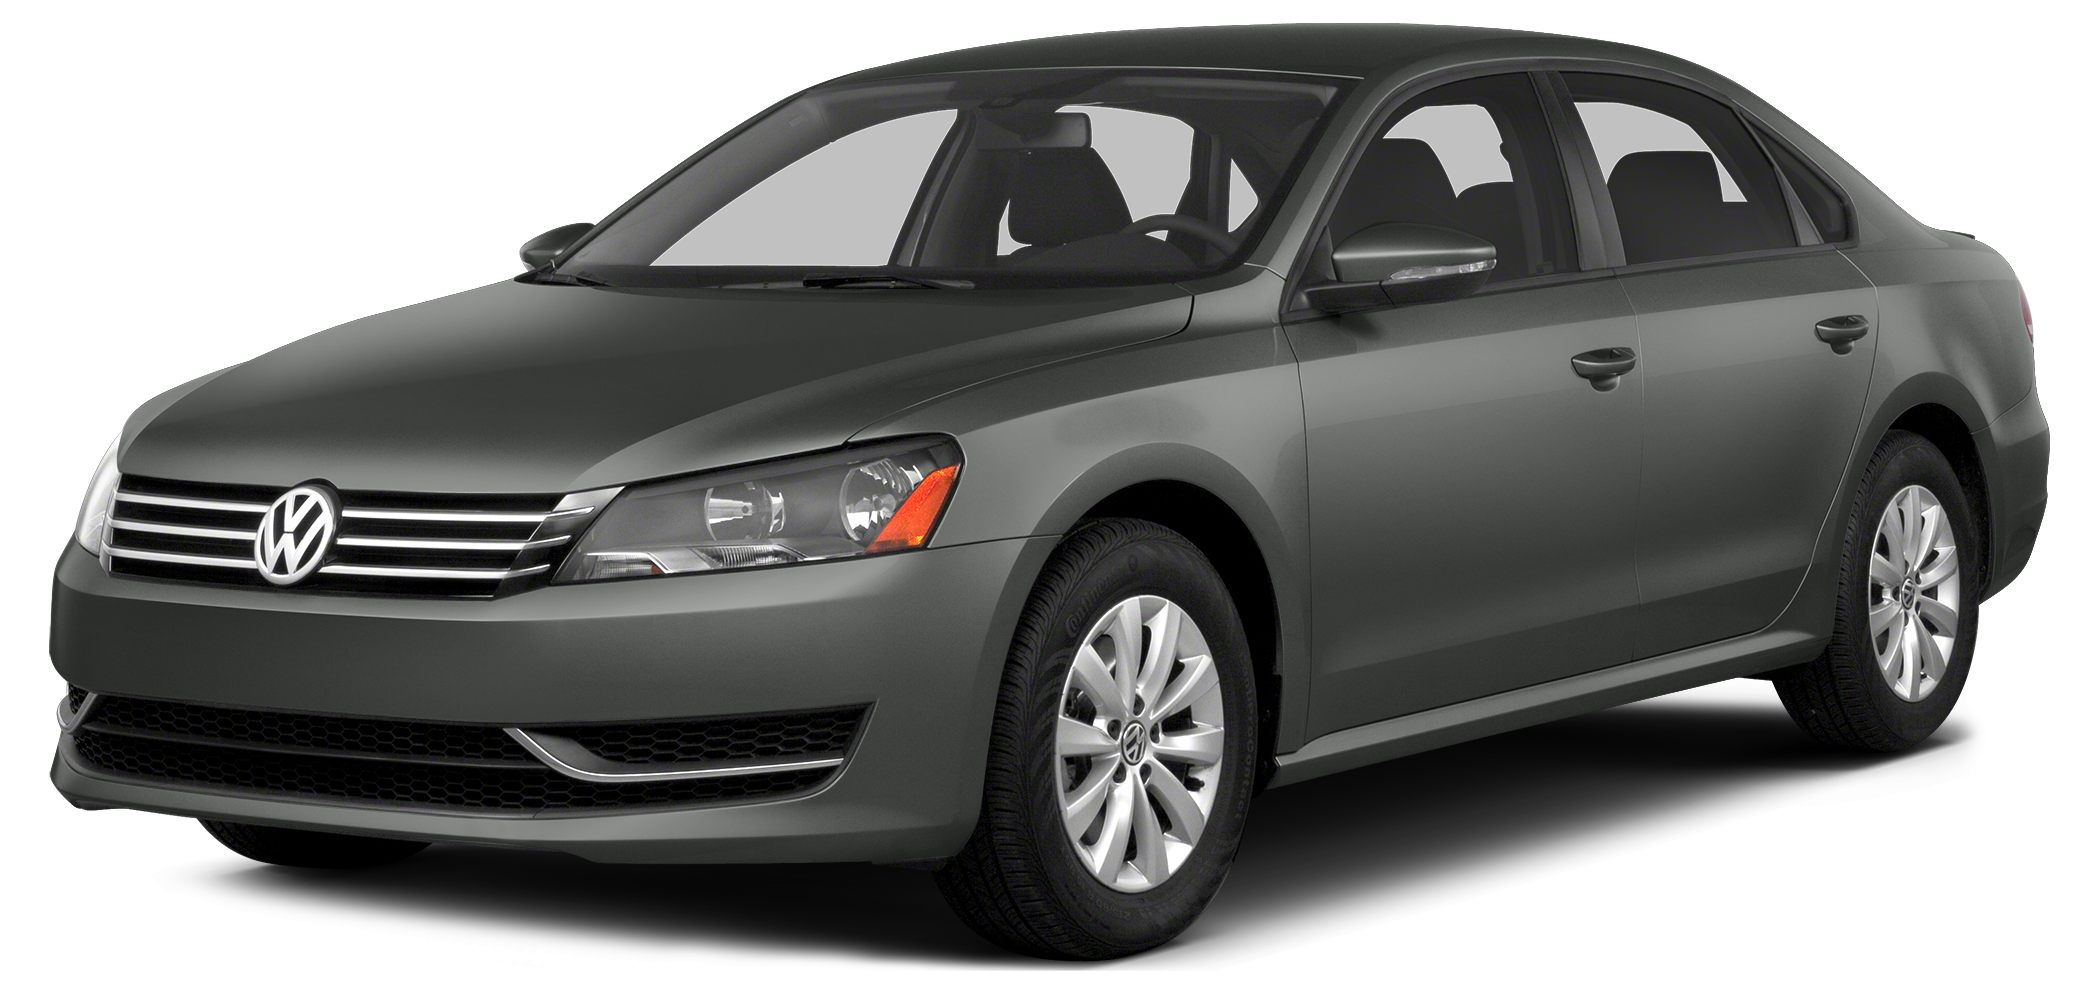 2014 Volkswagen Passat 18T SE 1 OWNER Moonrock wCloth Seating Surfaces Gasoline Turbo Yo